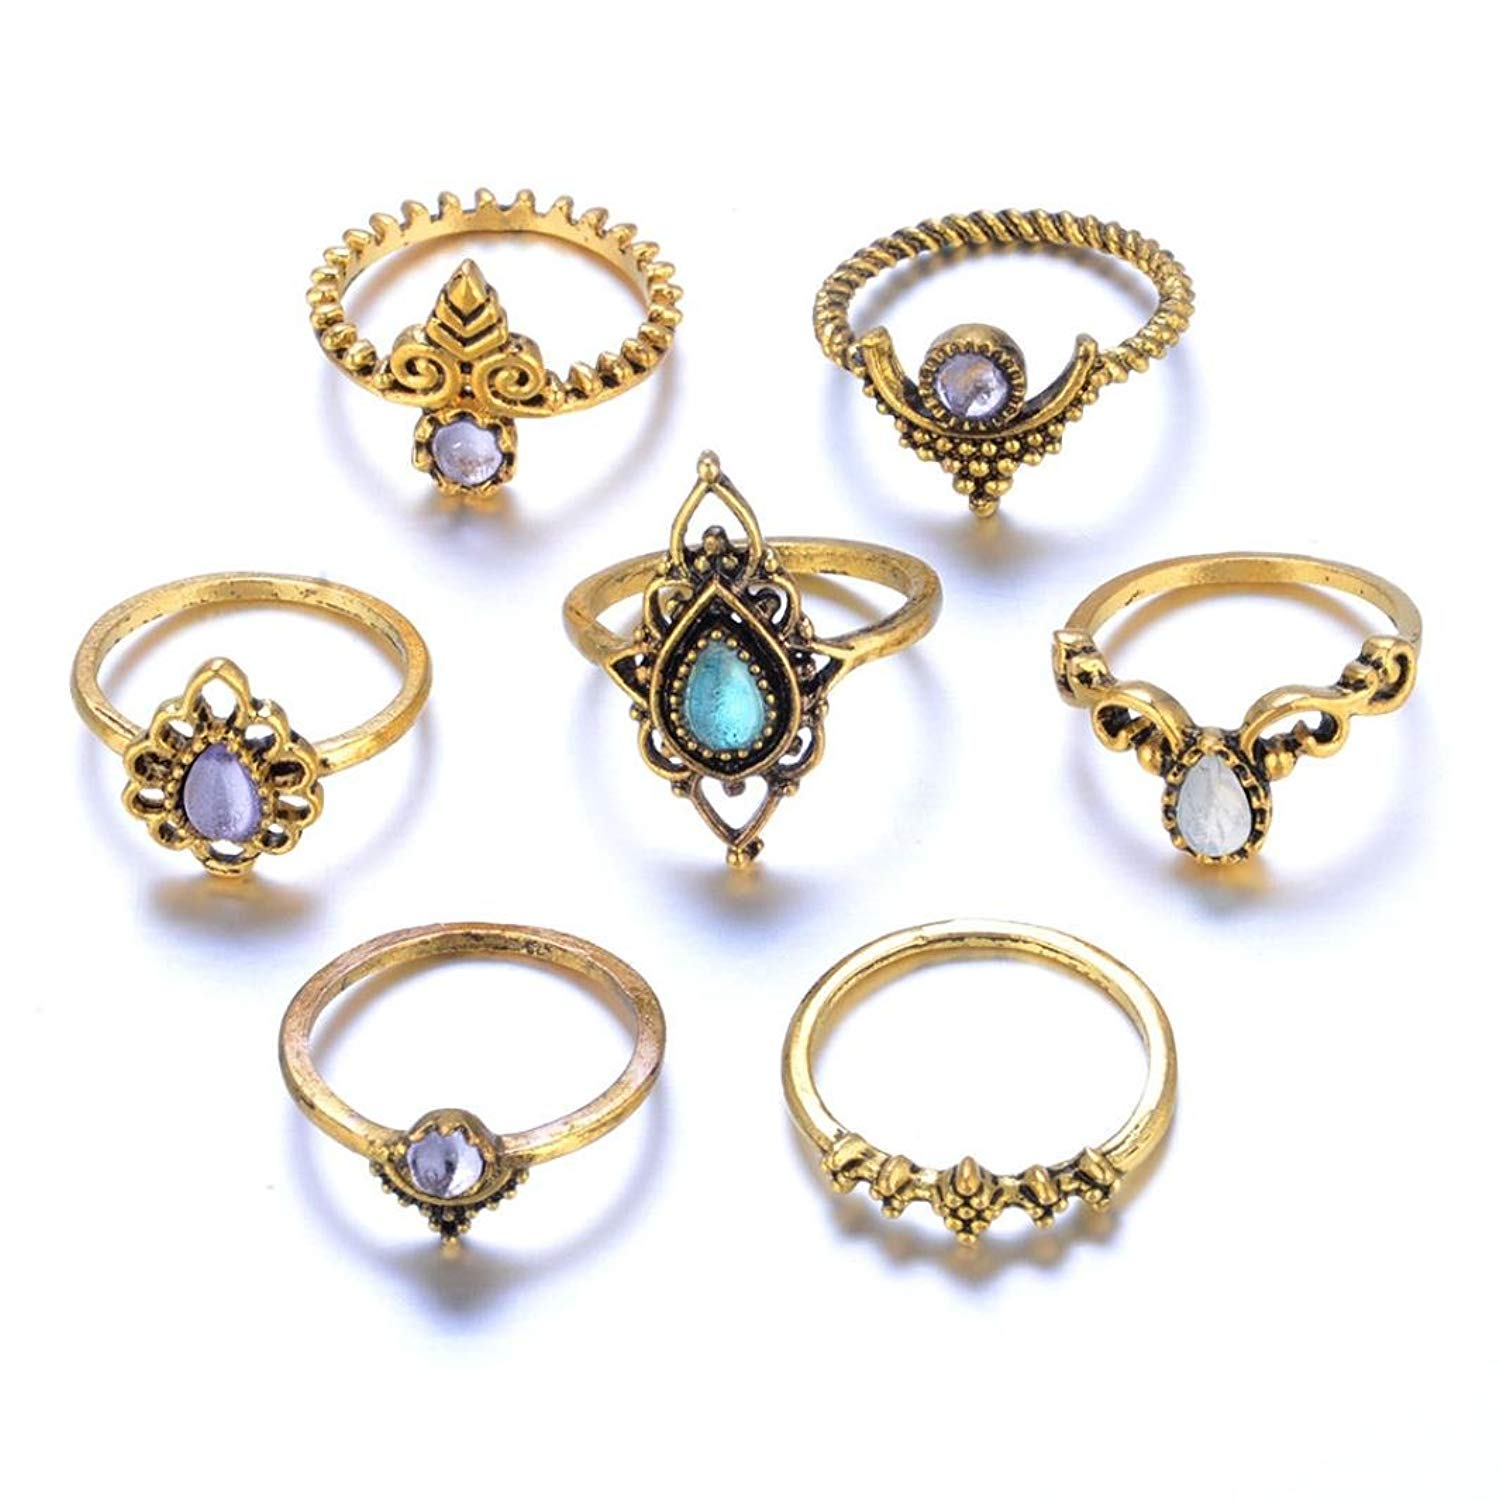 Clearance Sale! Vintage Rings,Leewos Women Bohemian Silver Stack Rings Above Knuckle Blue Rings Jewelry Gift Set 7pcs